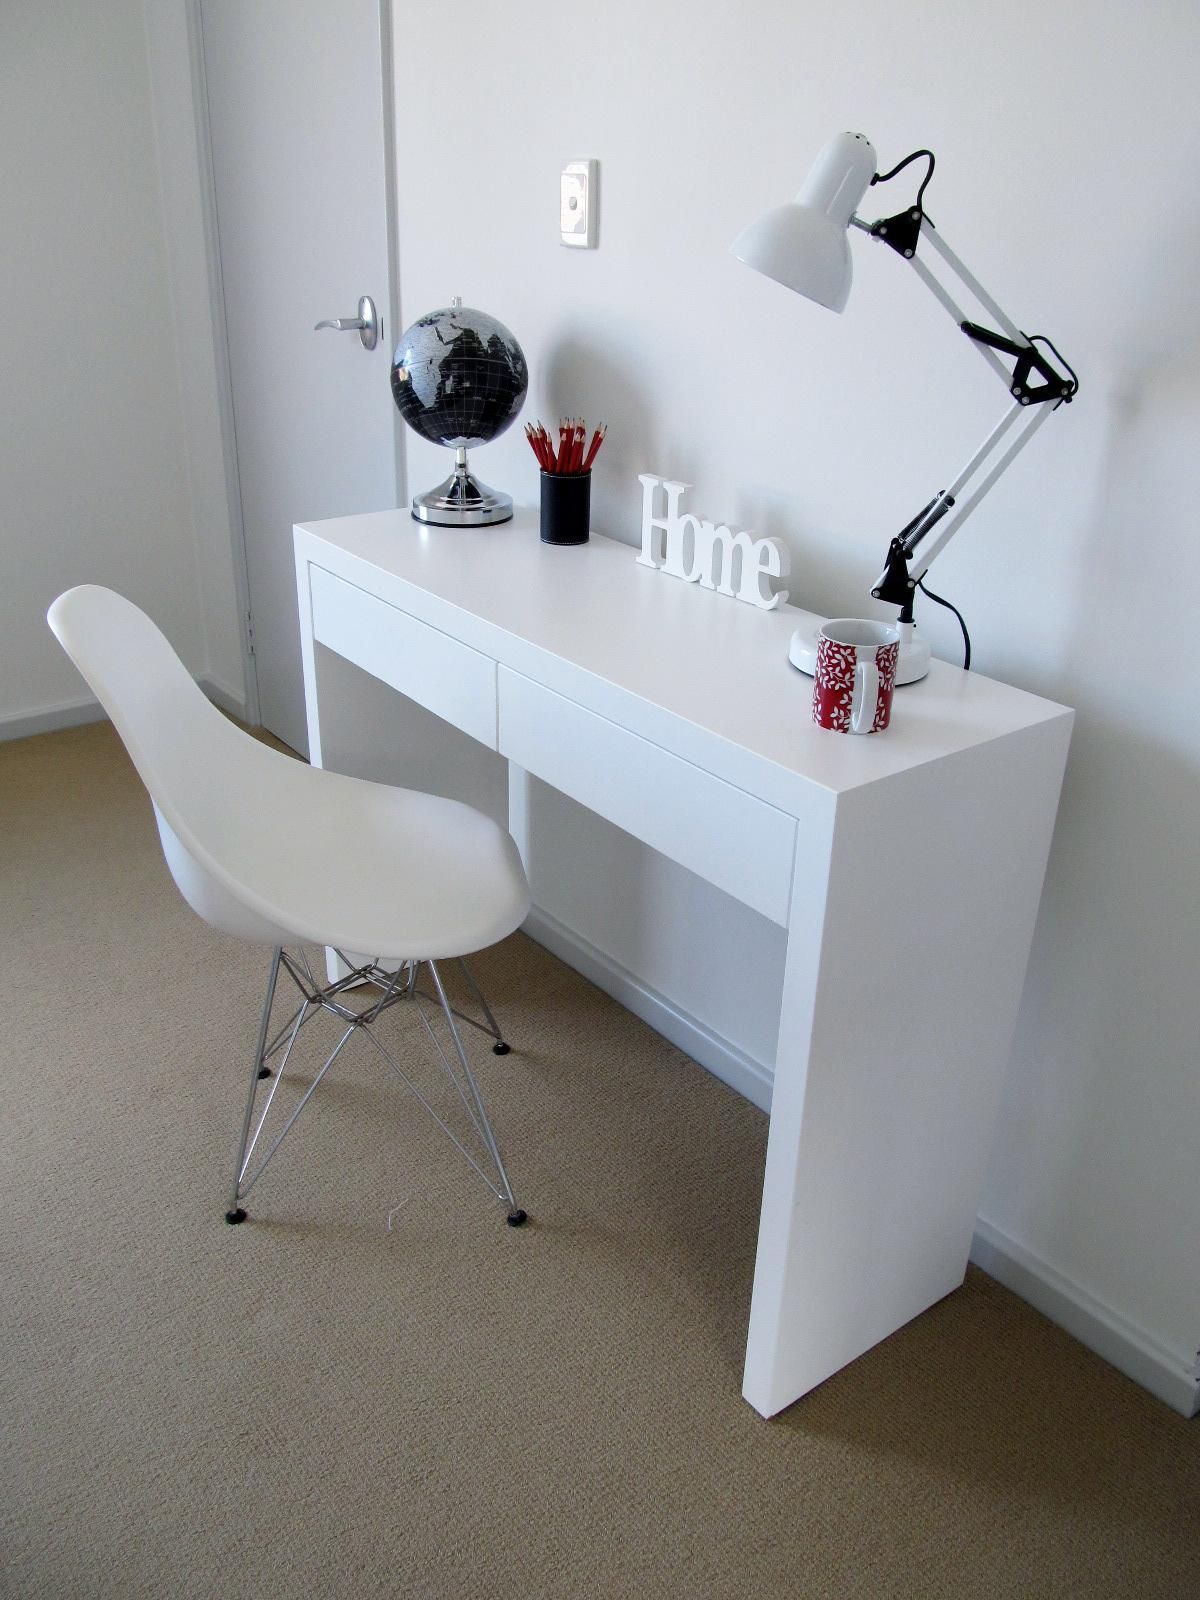 Bedroom study table and chair white desk chair white